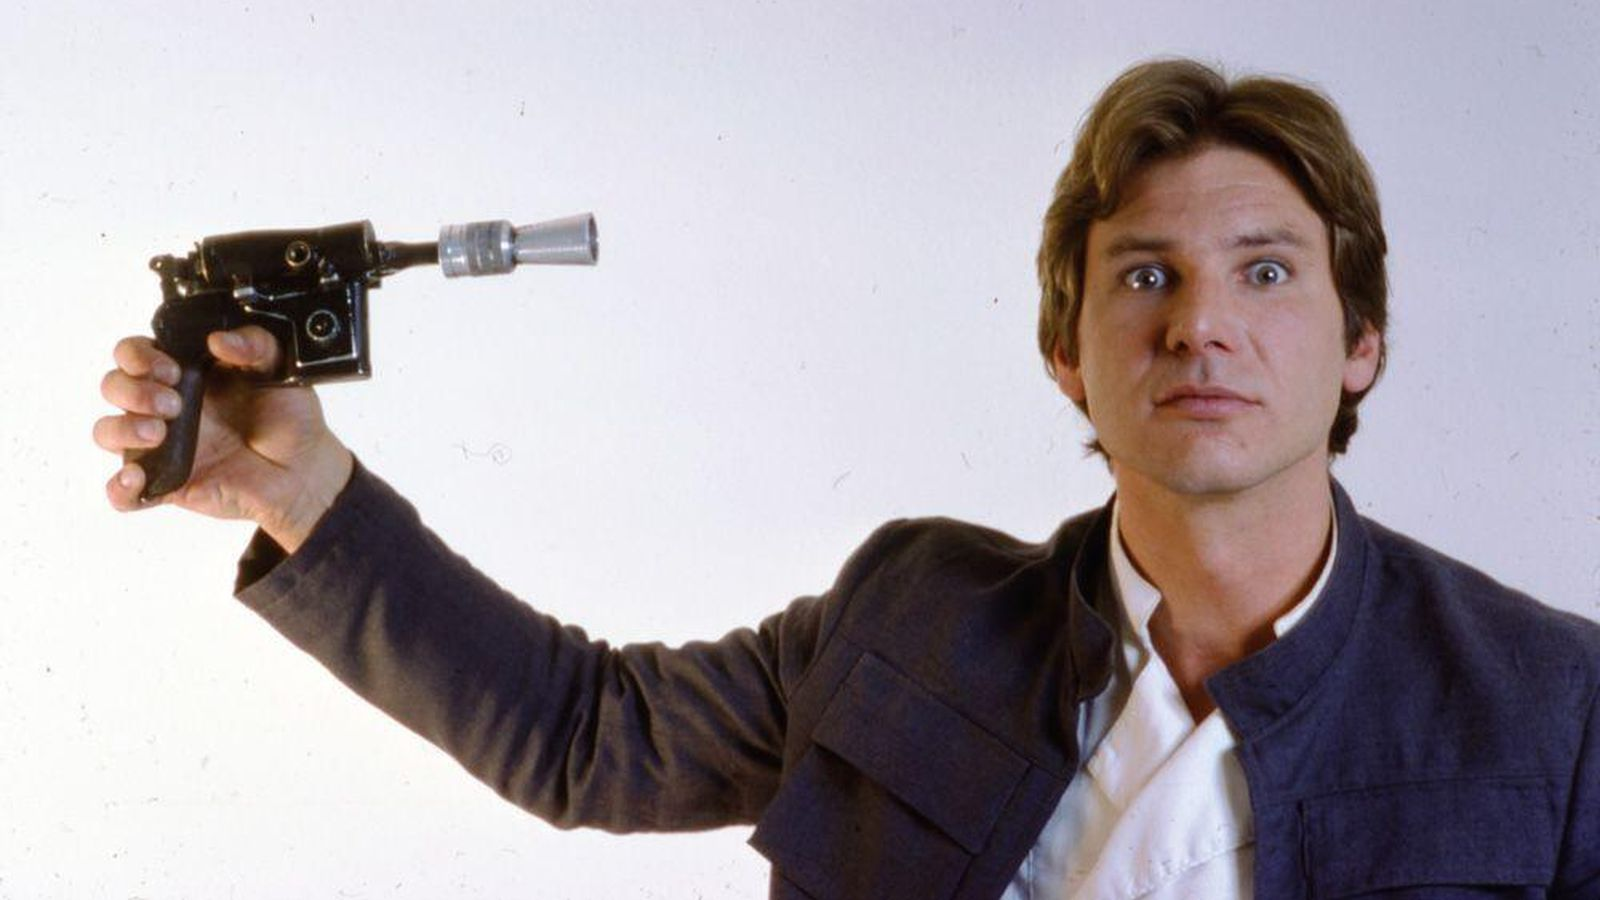 Untitled Han Solo Star Wars Story Gives Our First Look at the Cast